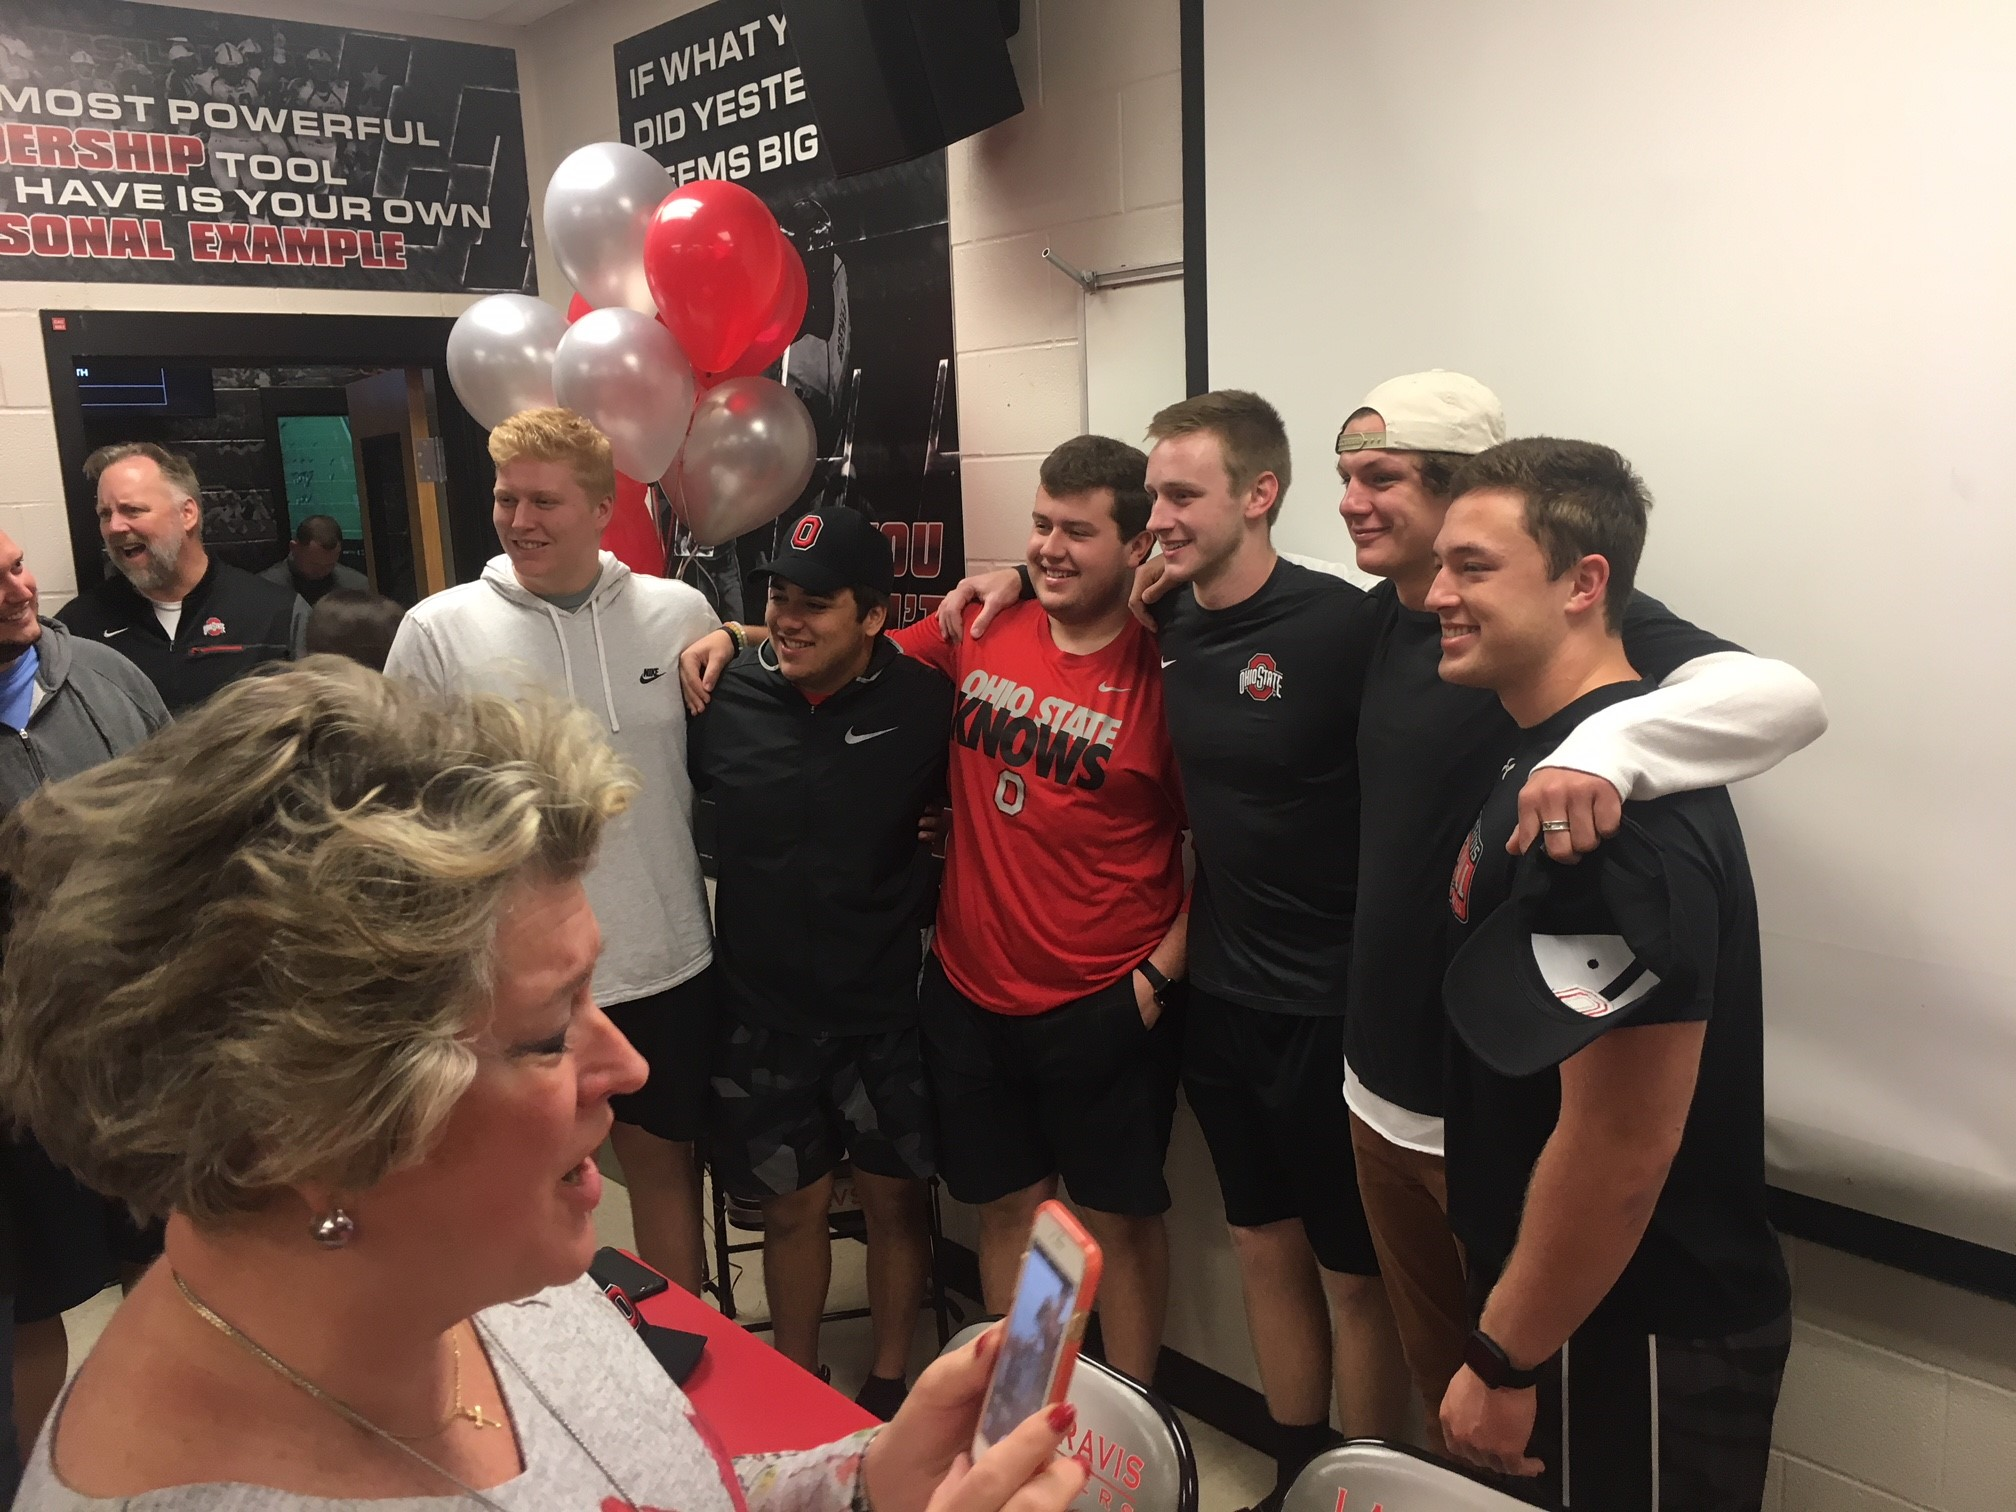 Lake Travis High athlete Matthew Baldwin signs his letter of intent with Ohio State University on Dec. 21, 2017. (KXAN Photo/Todd Bynum)